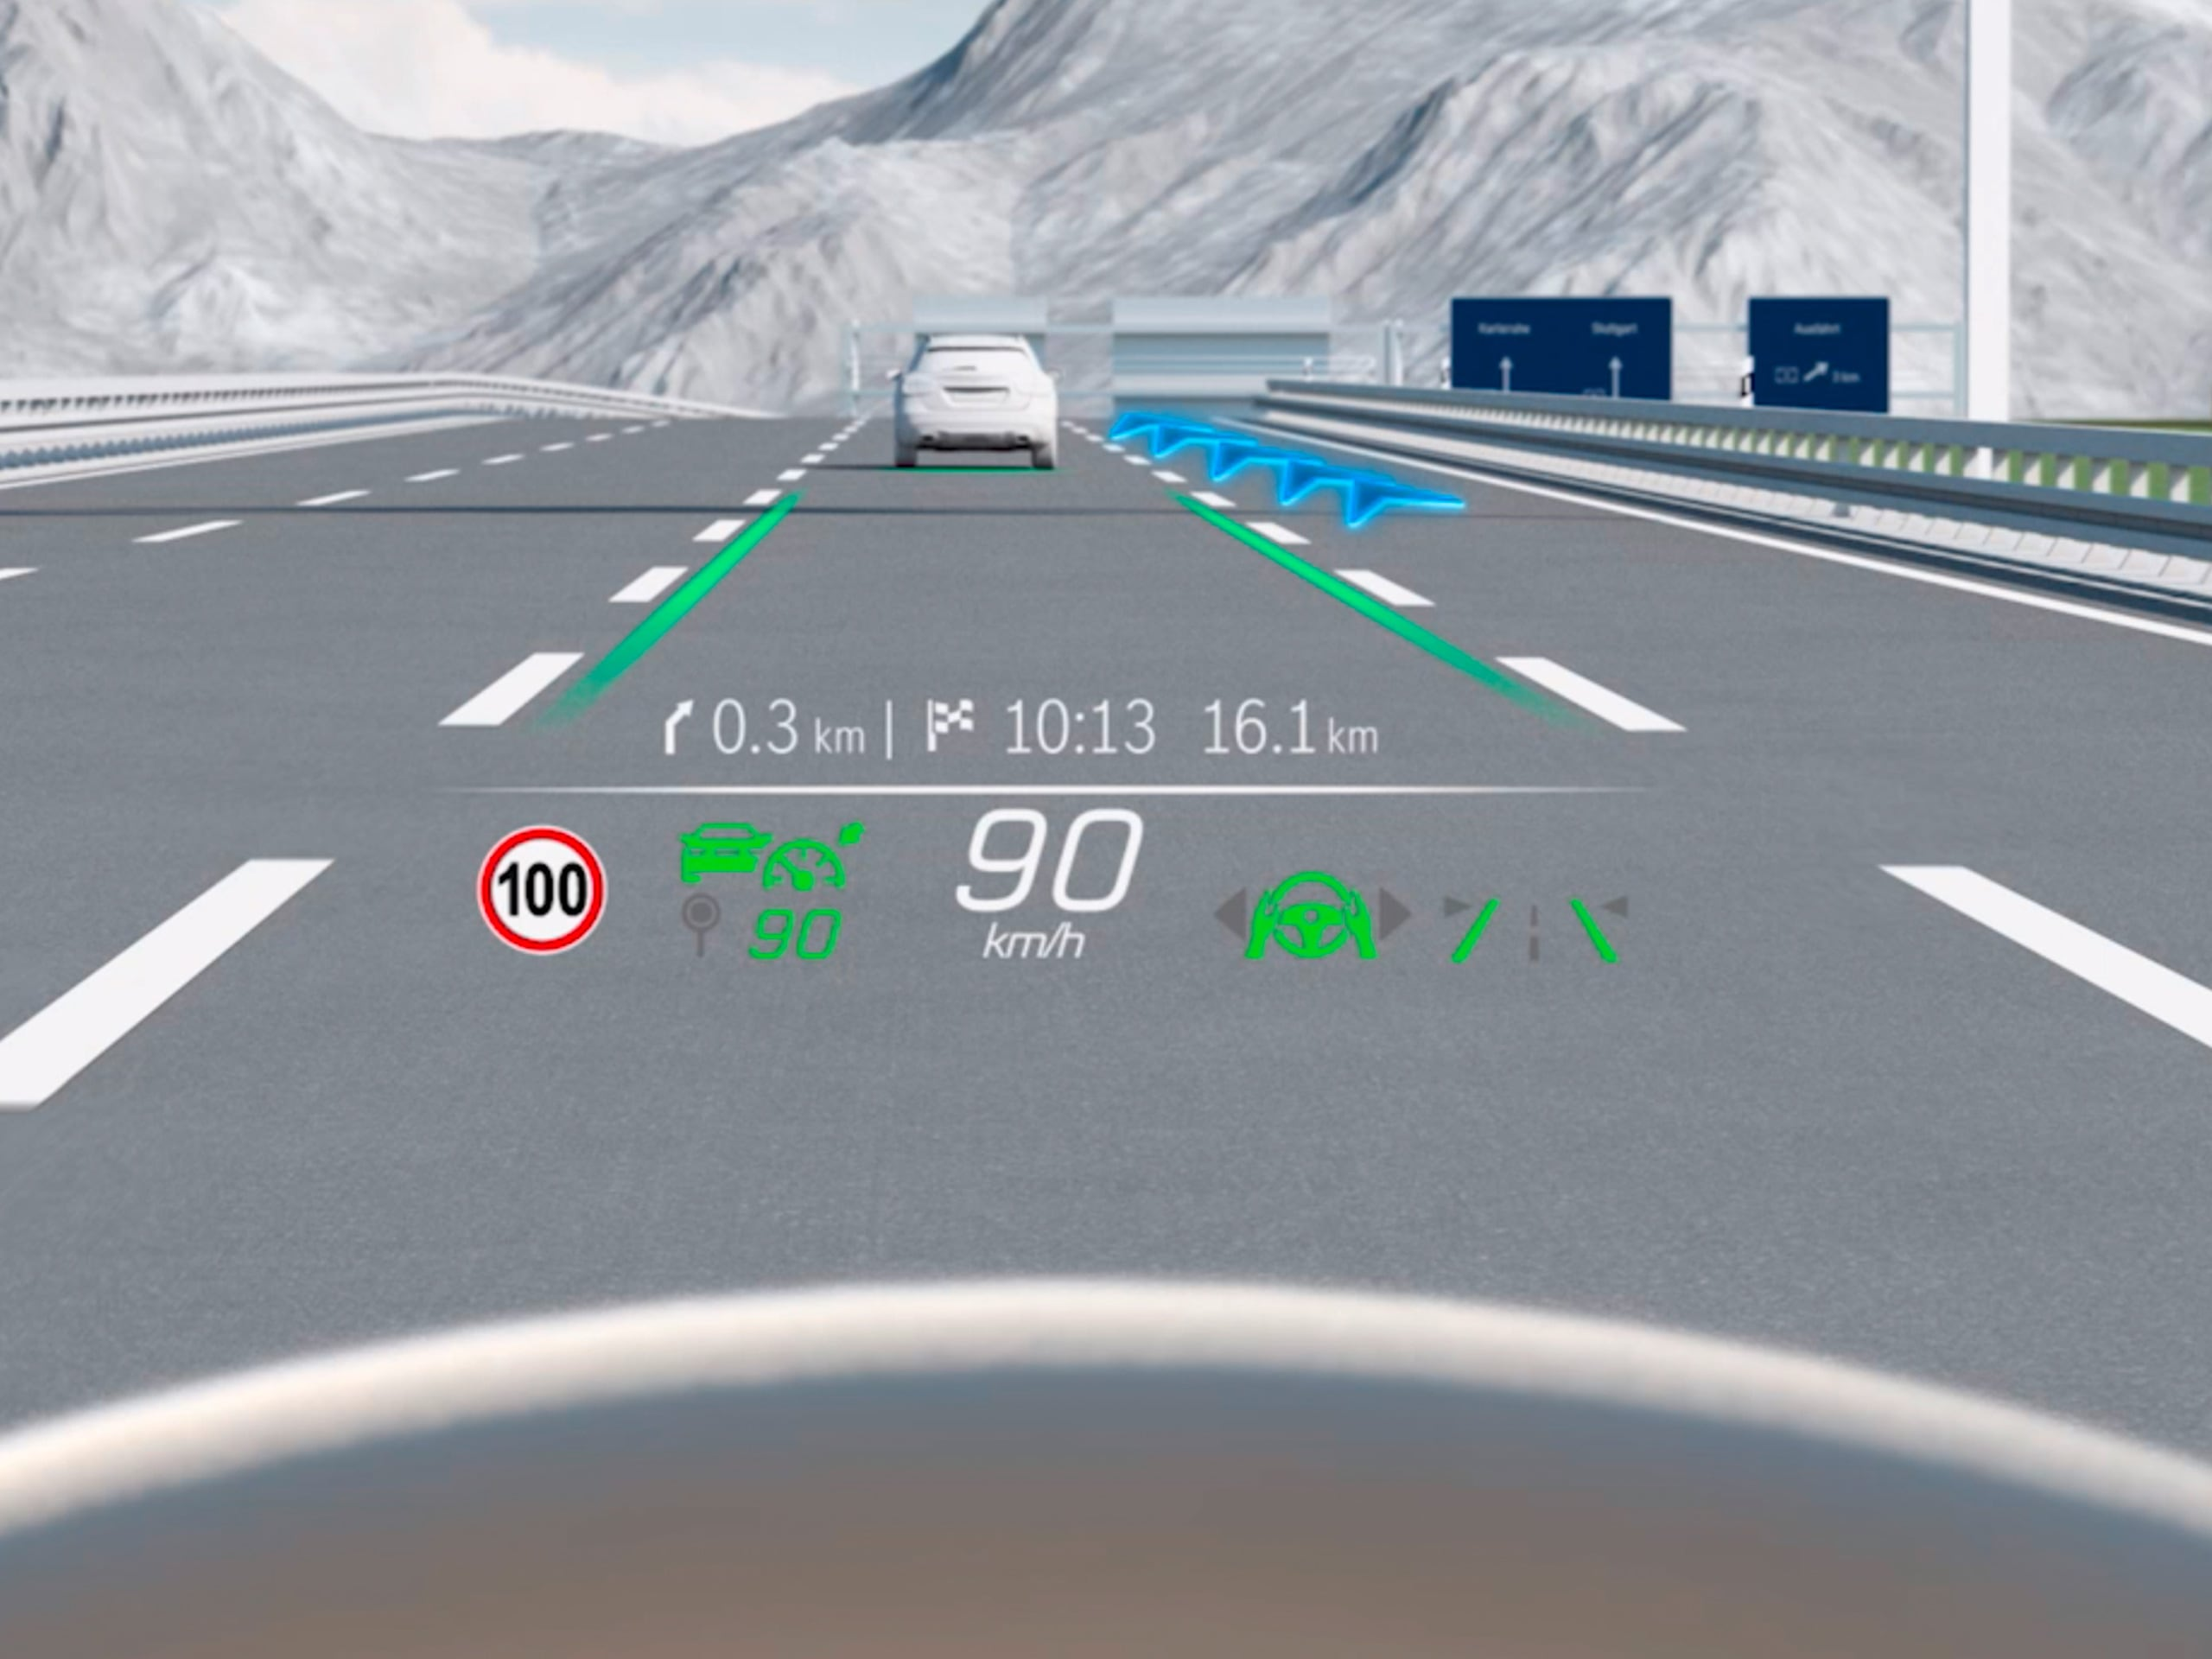 De video toont de werking van het head-up display van de Mercedes-Benz C-Klasse Limousine.